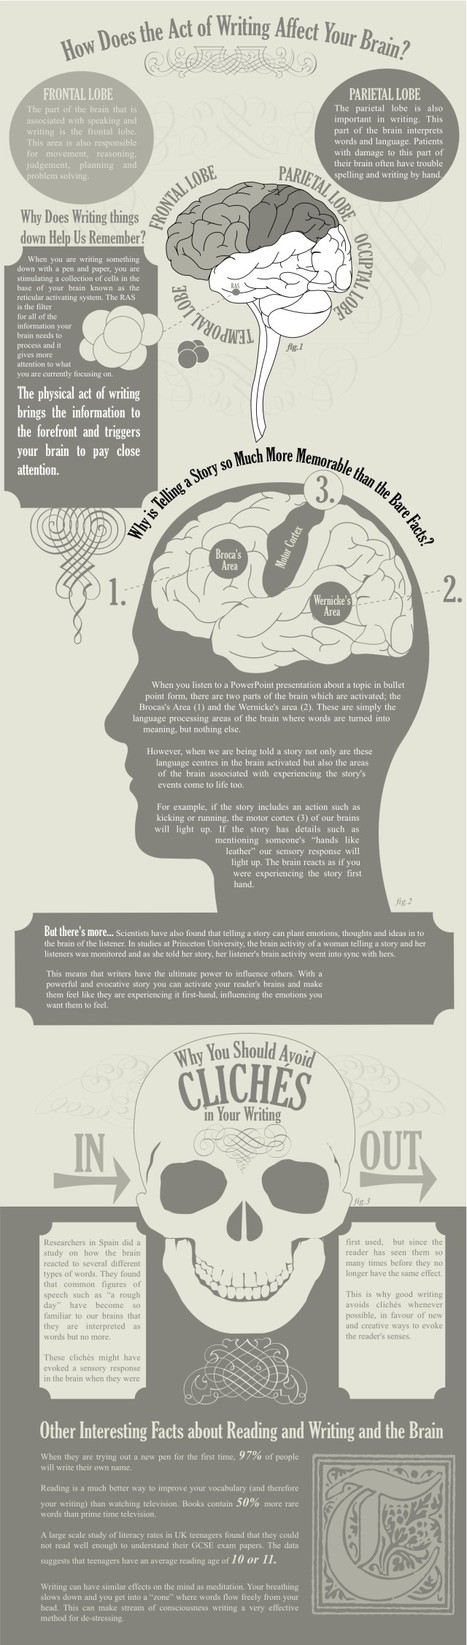 How Does Writing Affect Your Brain? [infographic] | Human Communication | Scoop.it